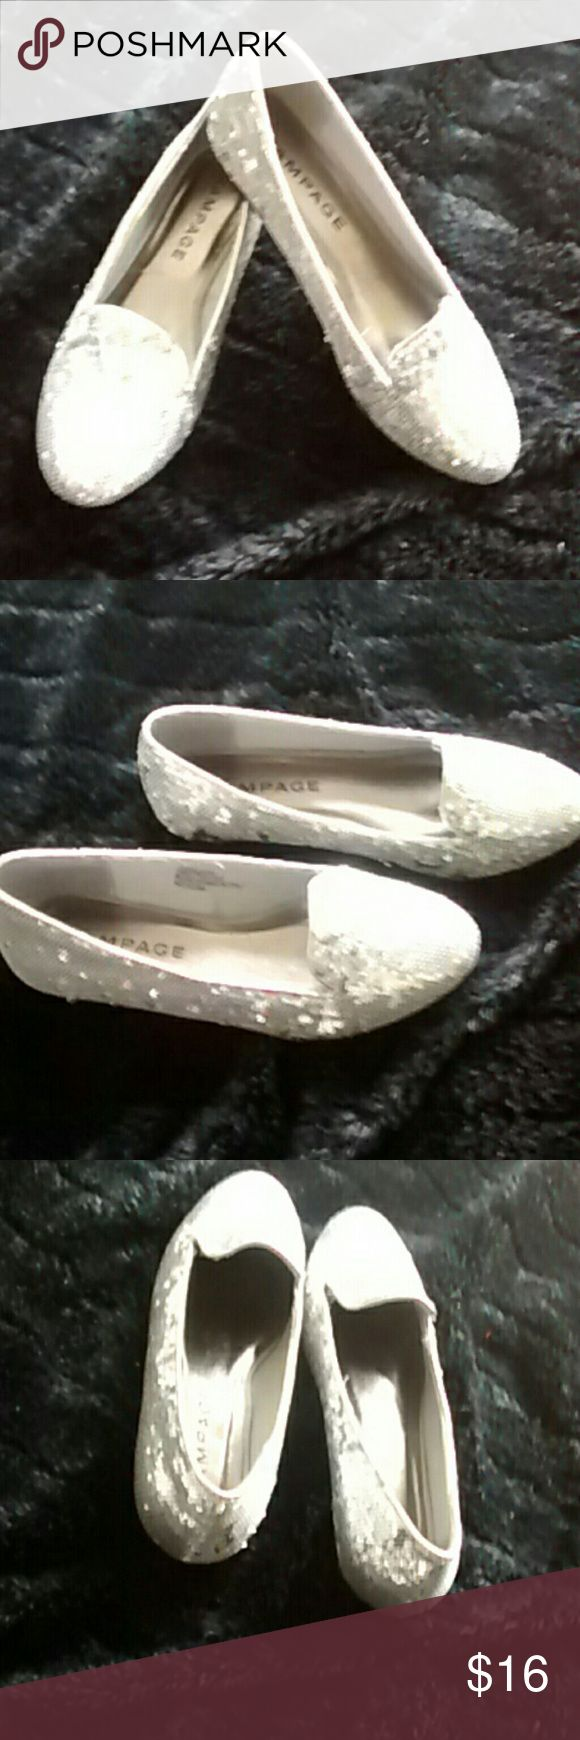 Rampage Silver Shoes Rampage silver sparkle shoe's. In excellent condition worn once no sign of wear at all. Size 71/2.  Any questions please feel free to ask. Happy Poshing! Rampage Shoes Flats & Loafers